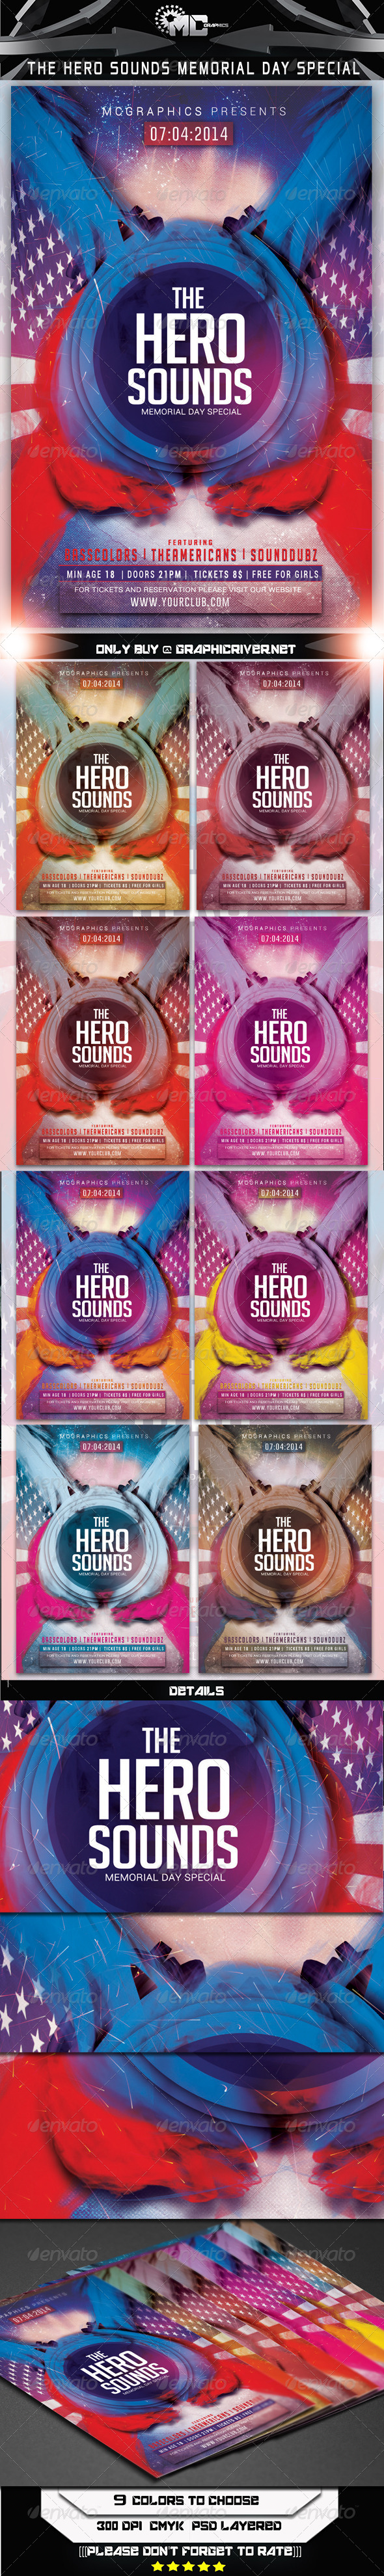 GraphicRiver The Hero Sounds Memorial Day Special Flyer Templat 7844429